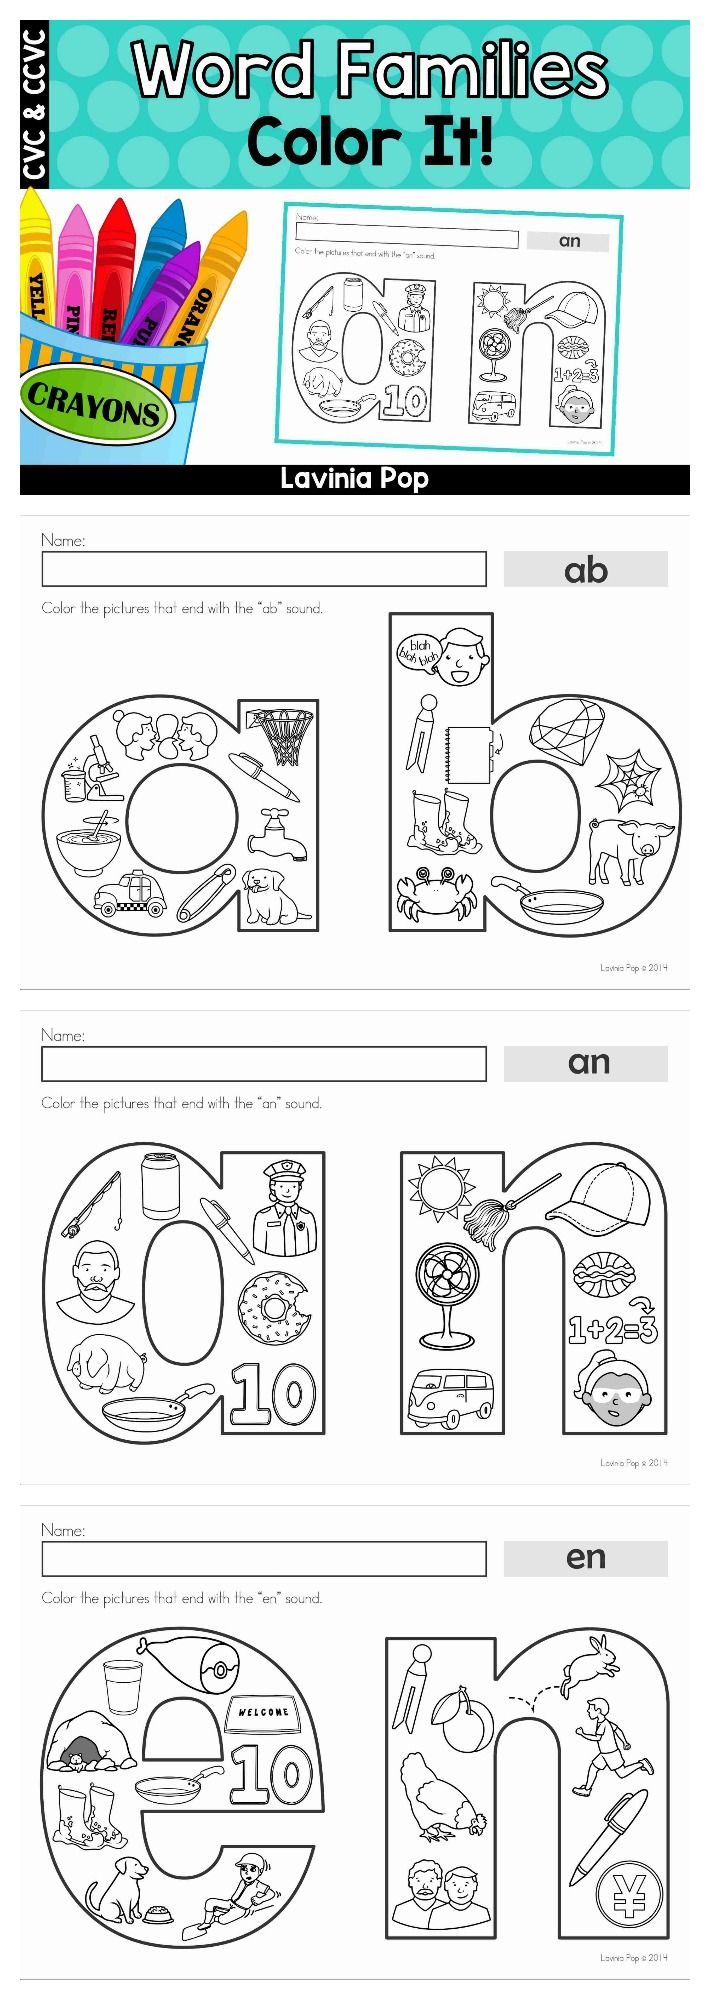 Worksheet U Family Words 1000 ideas about word families on pinterest family color it children the pictures that belong to focus family